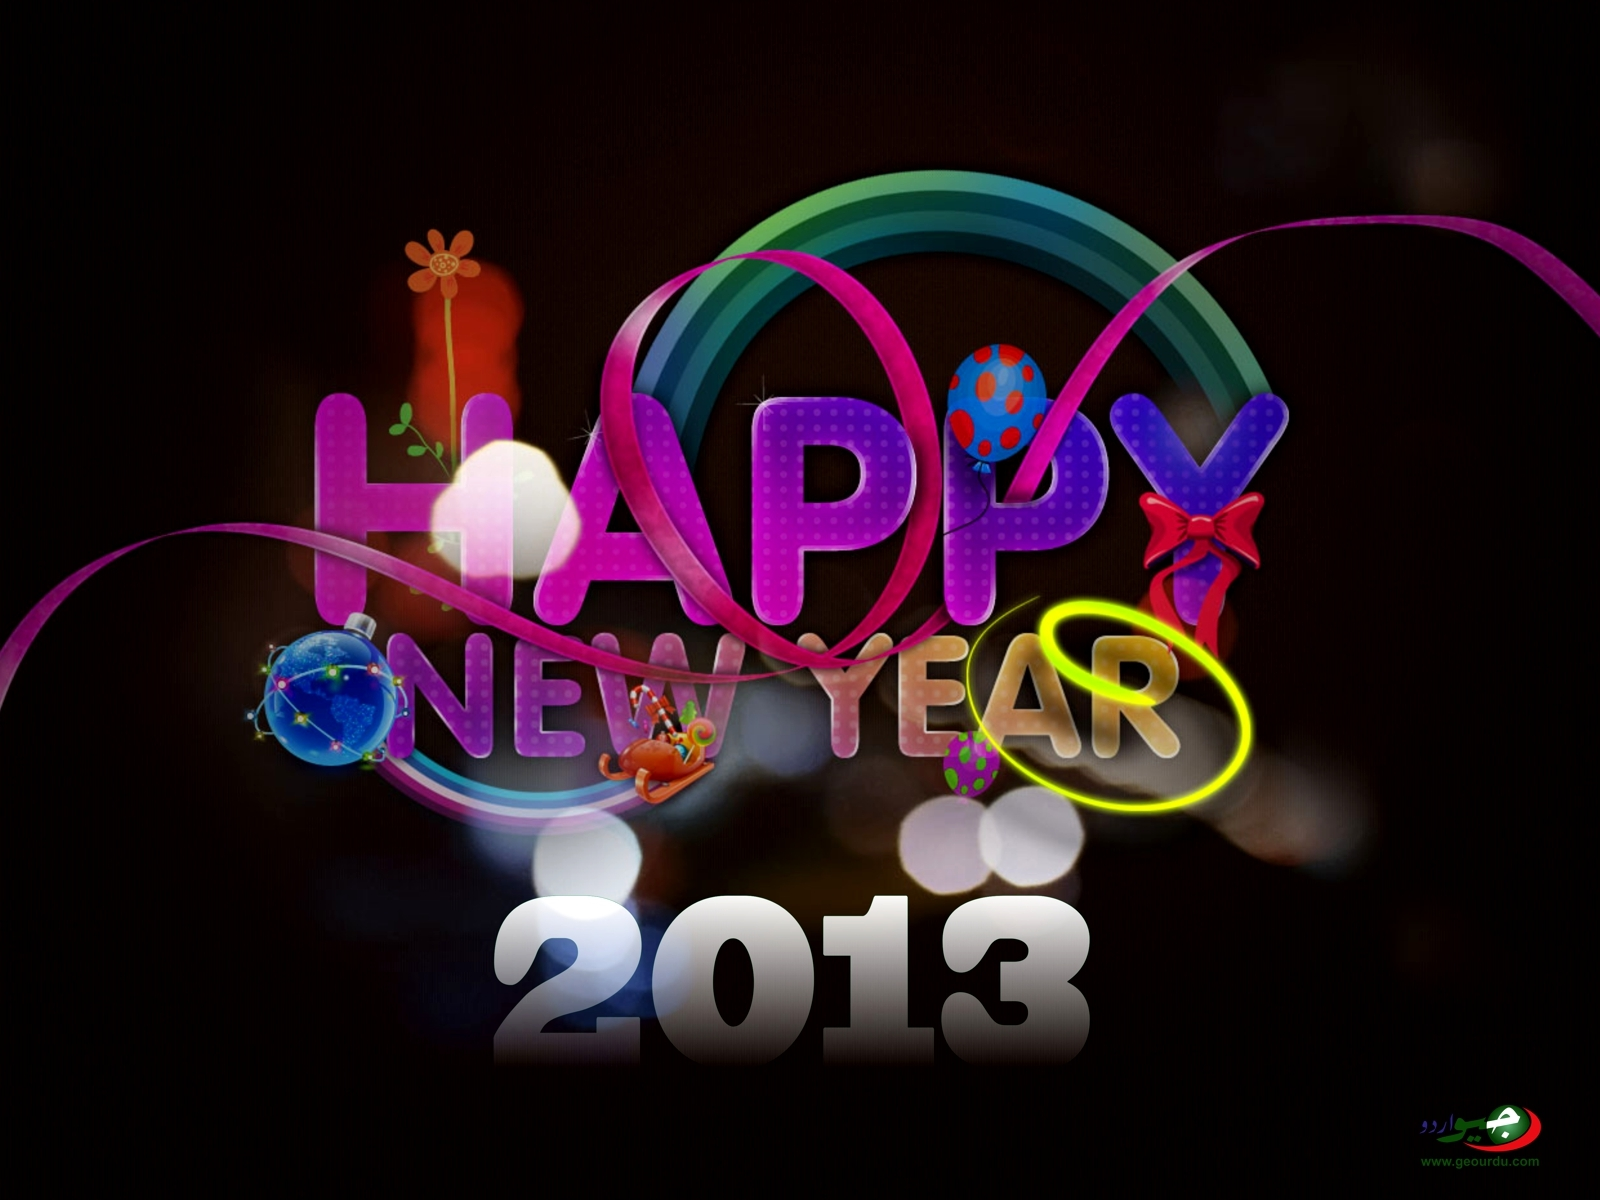 happy new year 2013 happy new year 2013 happy new year 2013 happy new . 1600 x 1200.Happy New Year Foto